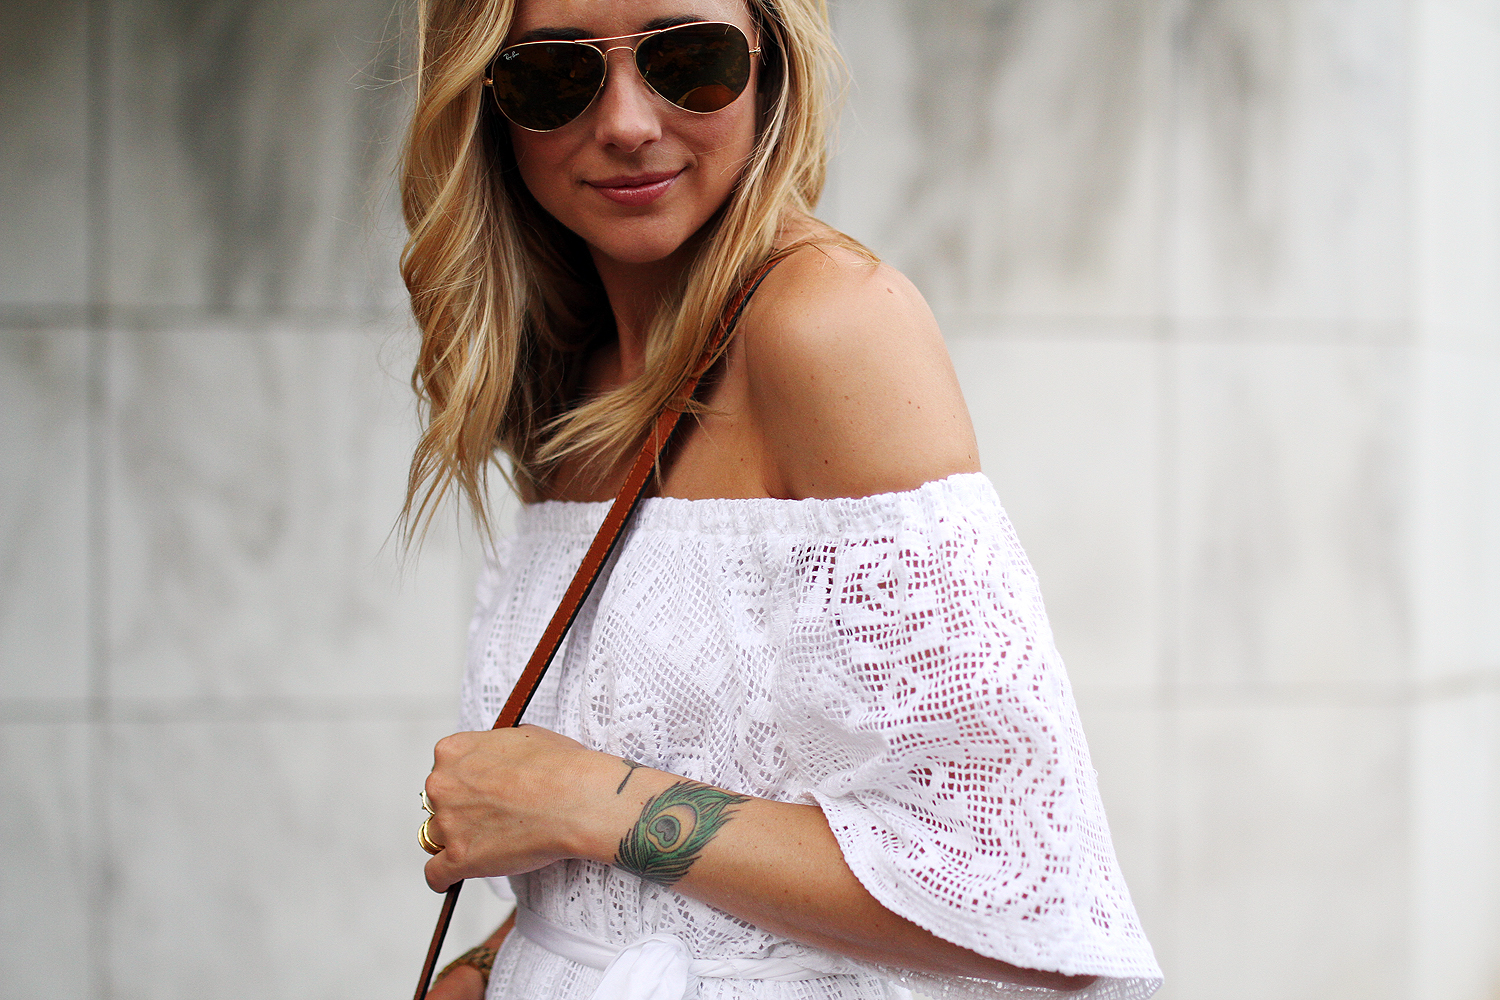 fashion-jackson-banana-republic-white-lace-off-the-shoulder-dress-ray-ban-gold-aviator-sunglasses